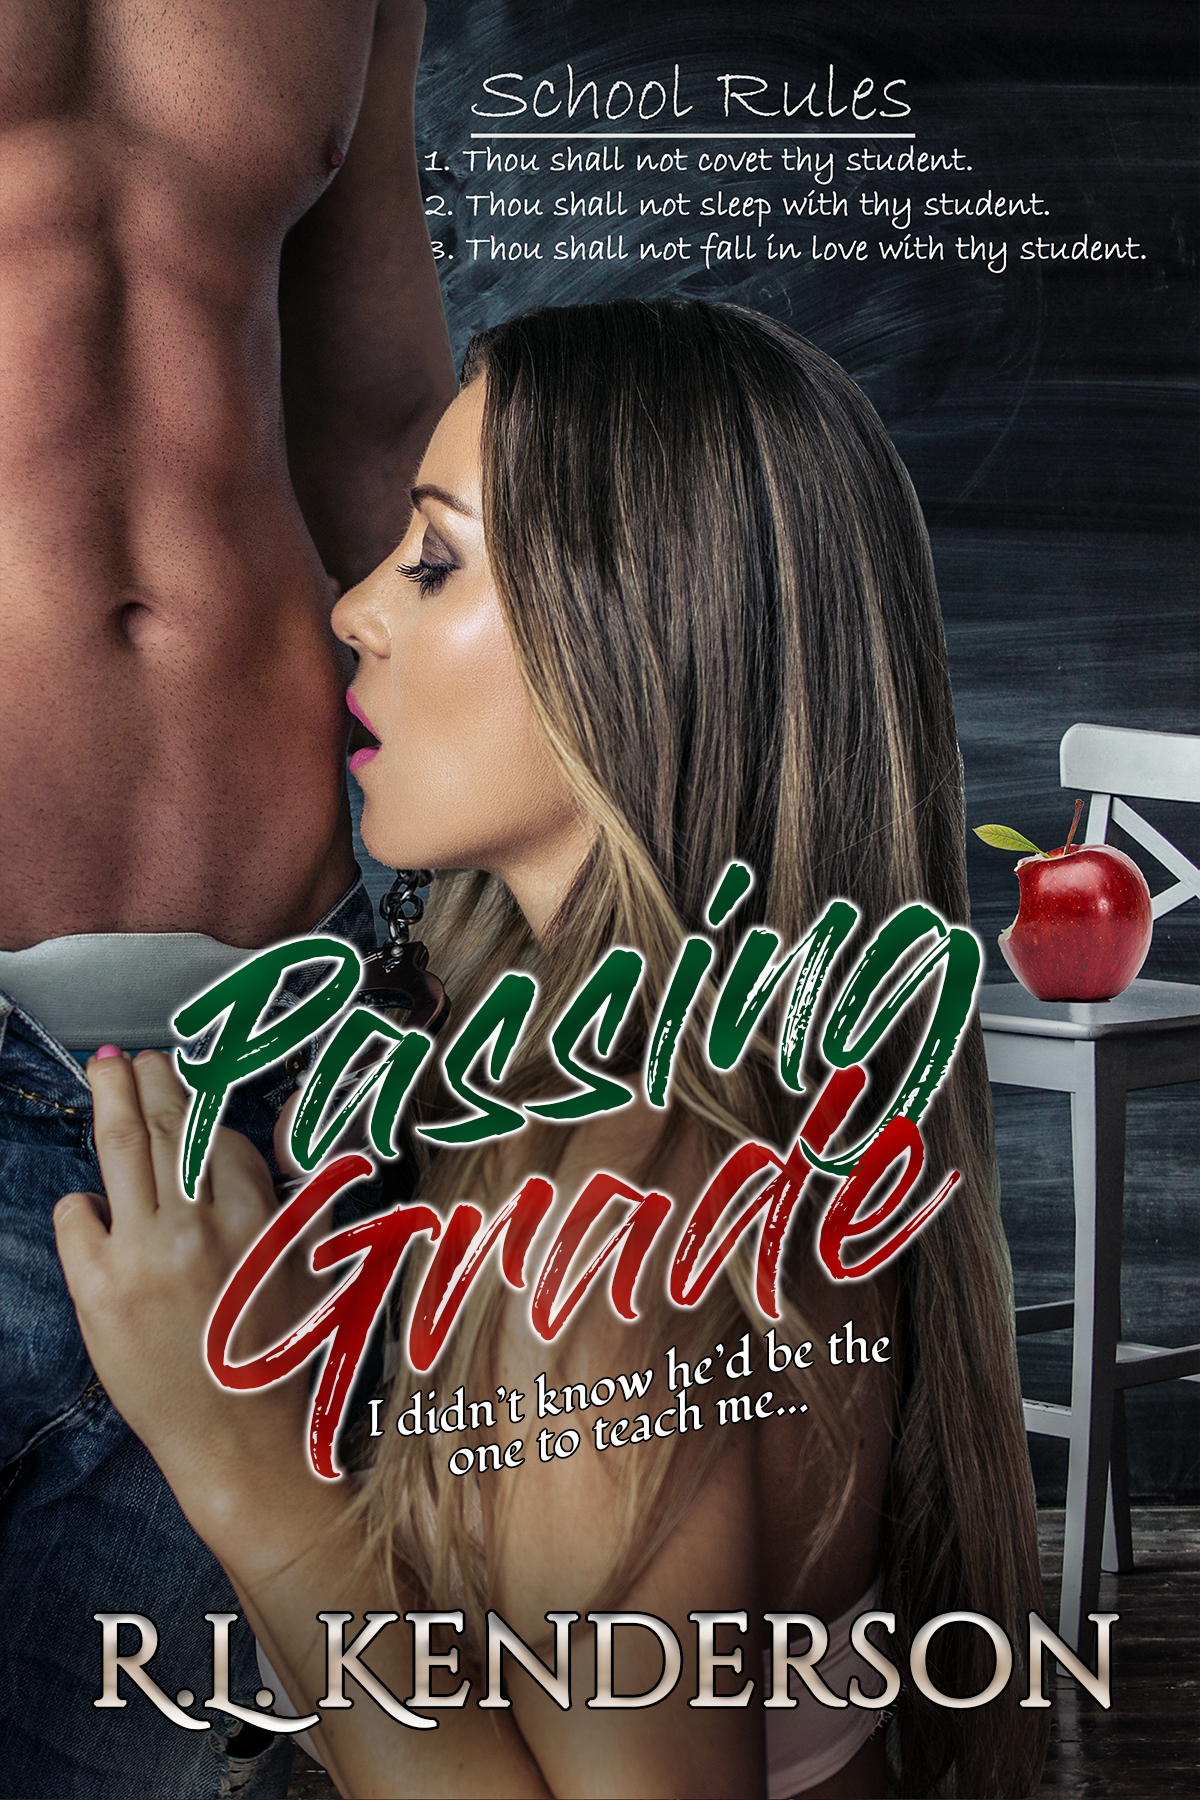 REVIEW: Passing Grade by R.L. Kenderson